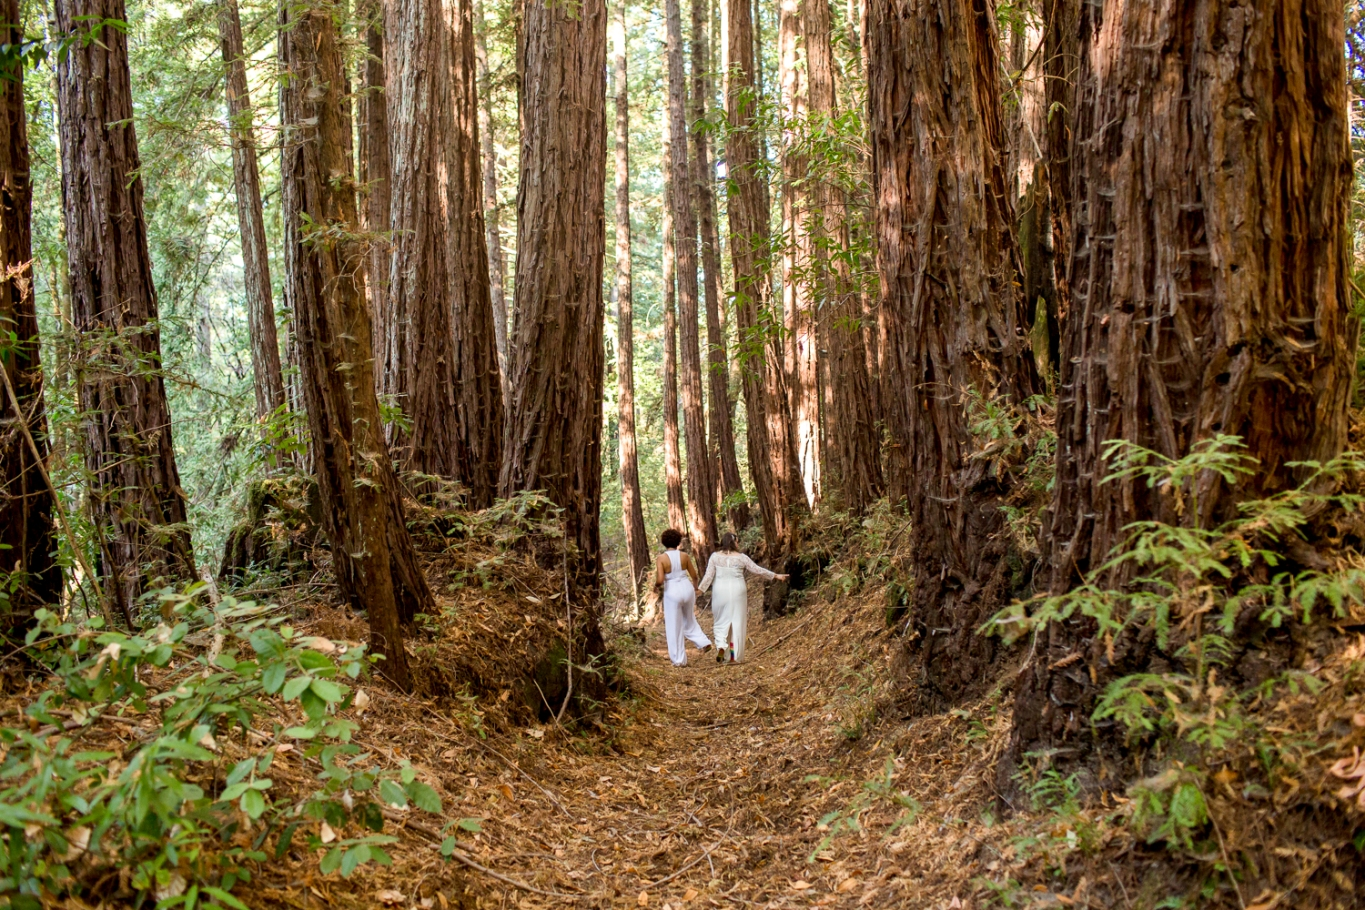 Hally and Maijia amid the redwoods